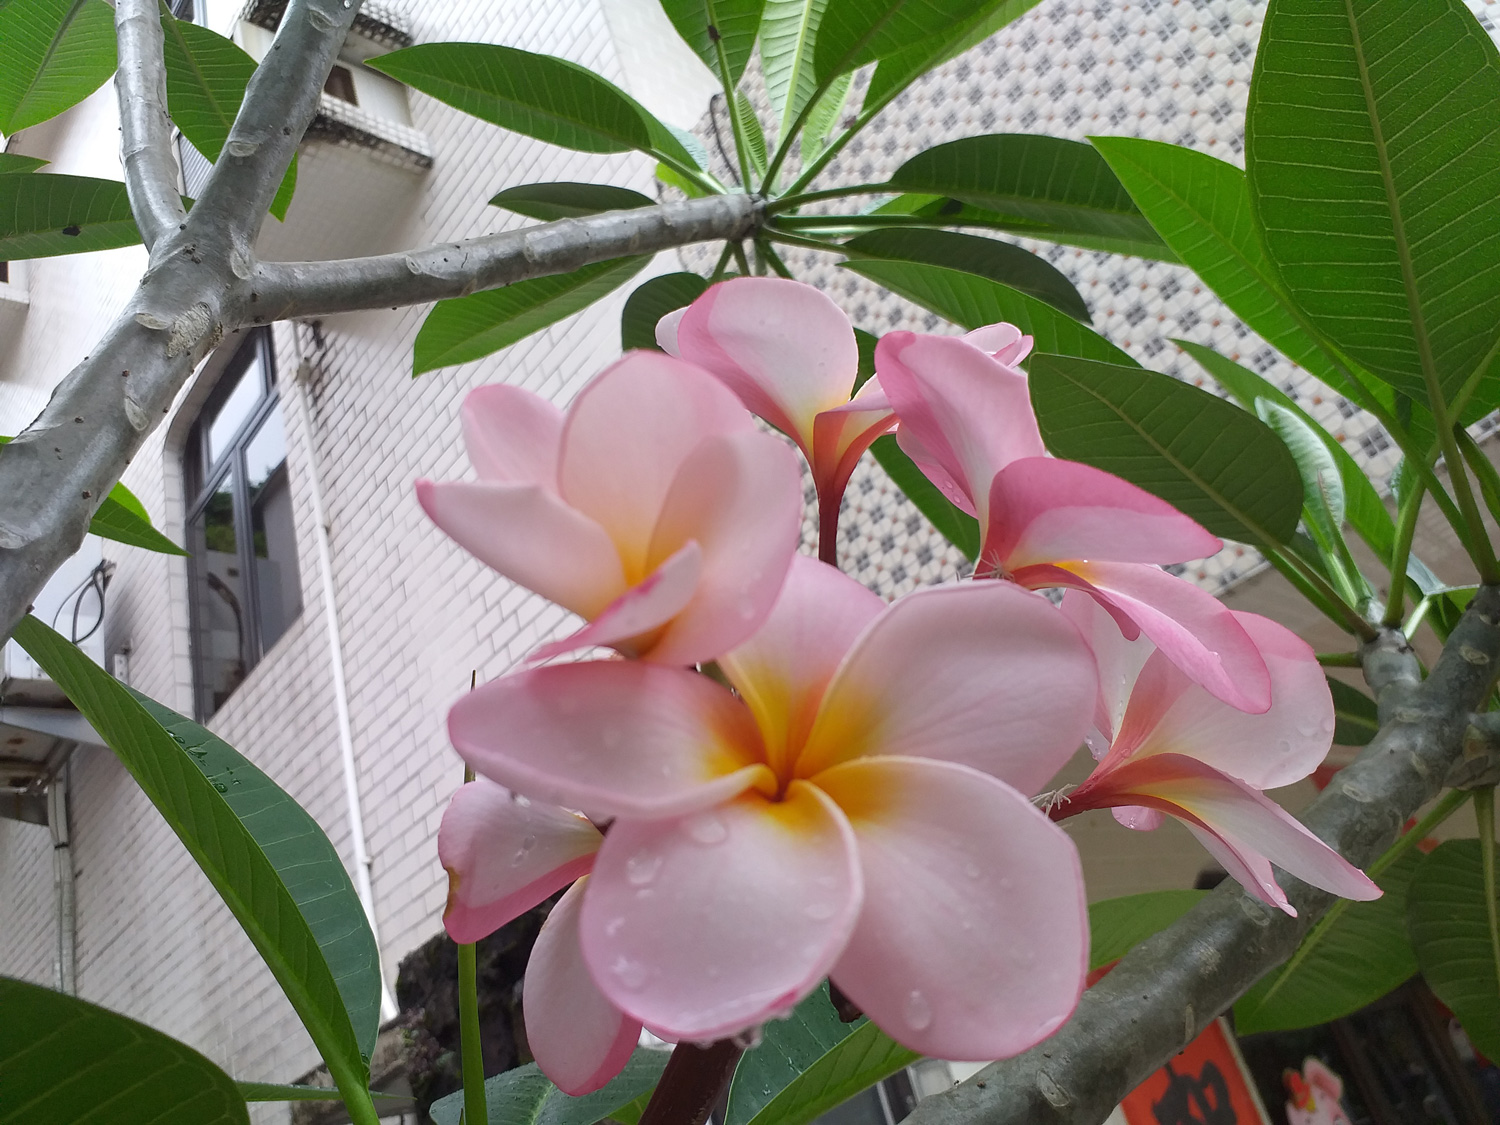 Stop and smell the frangipani